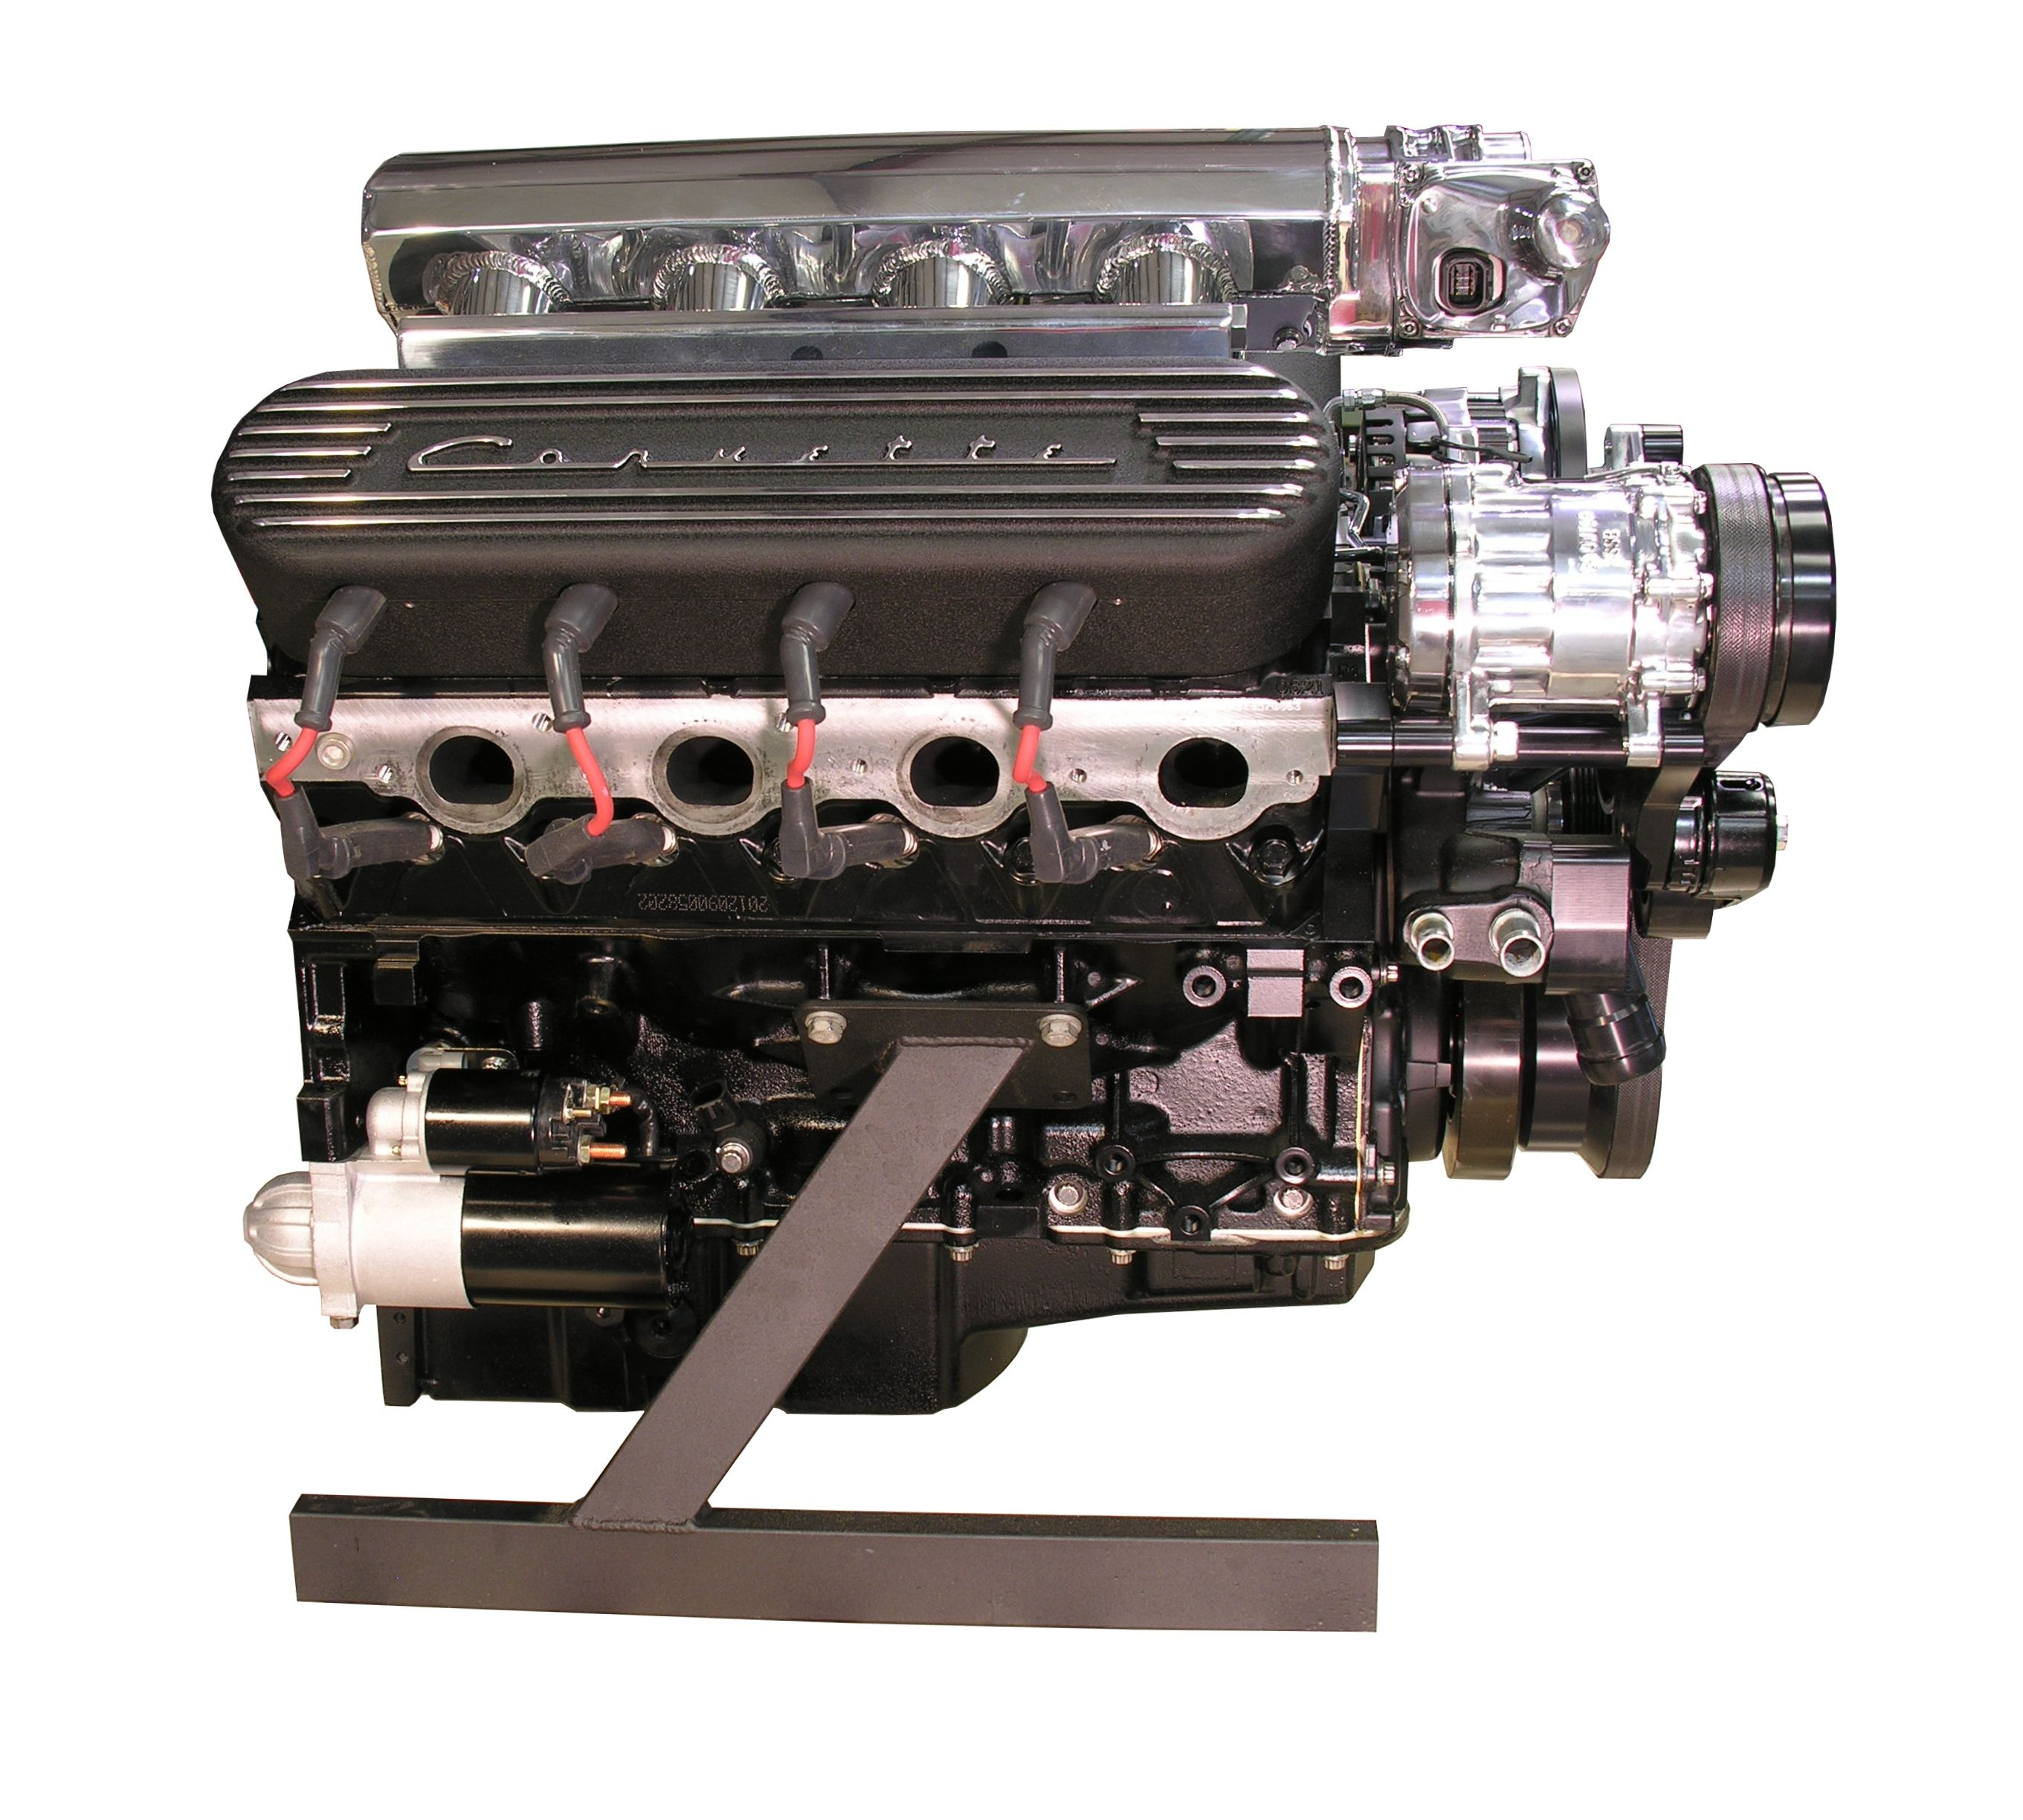 Southern Performance System Spsengines Turnkey Engine Packages Engineering Ls Engine Classic Hot Rod